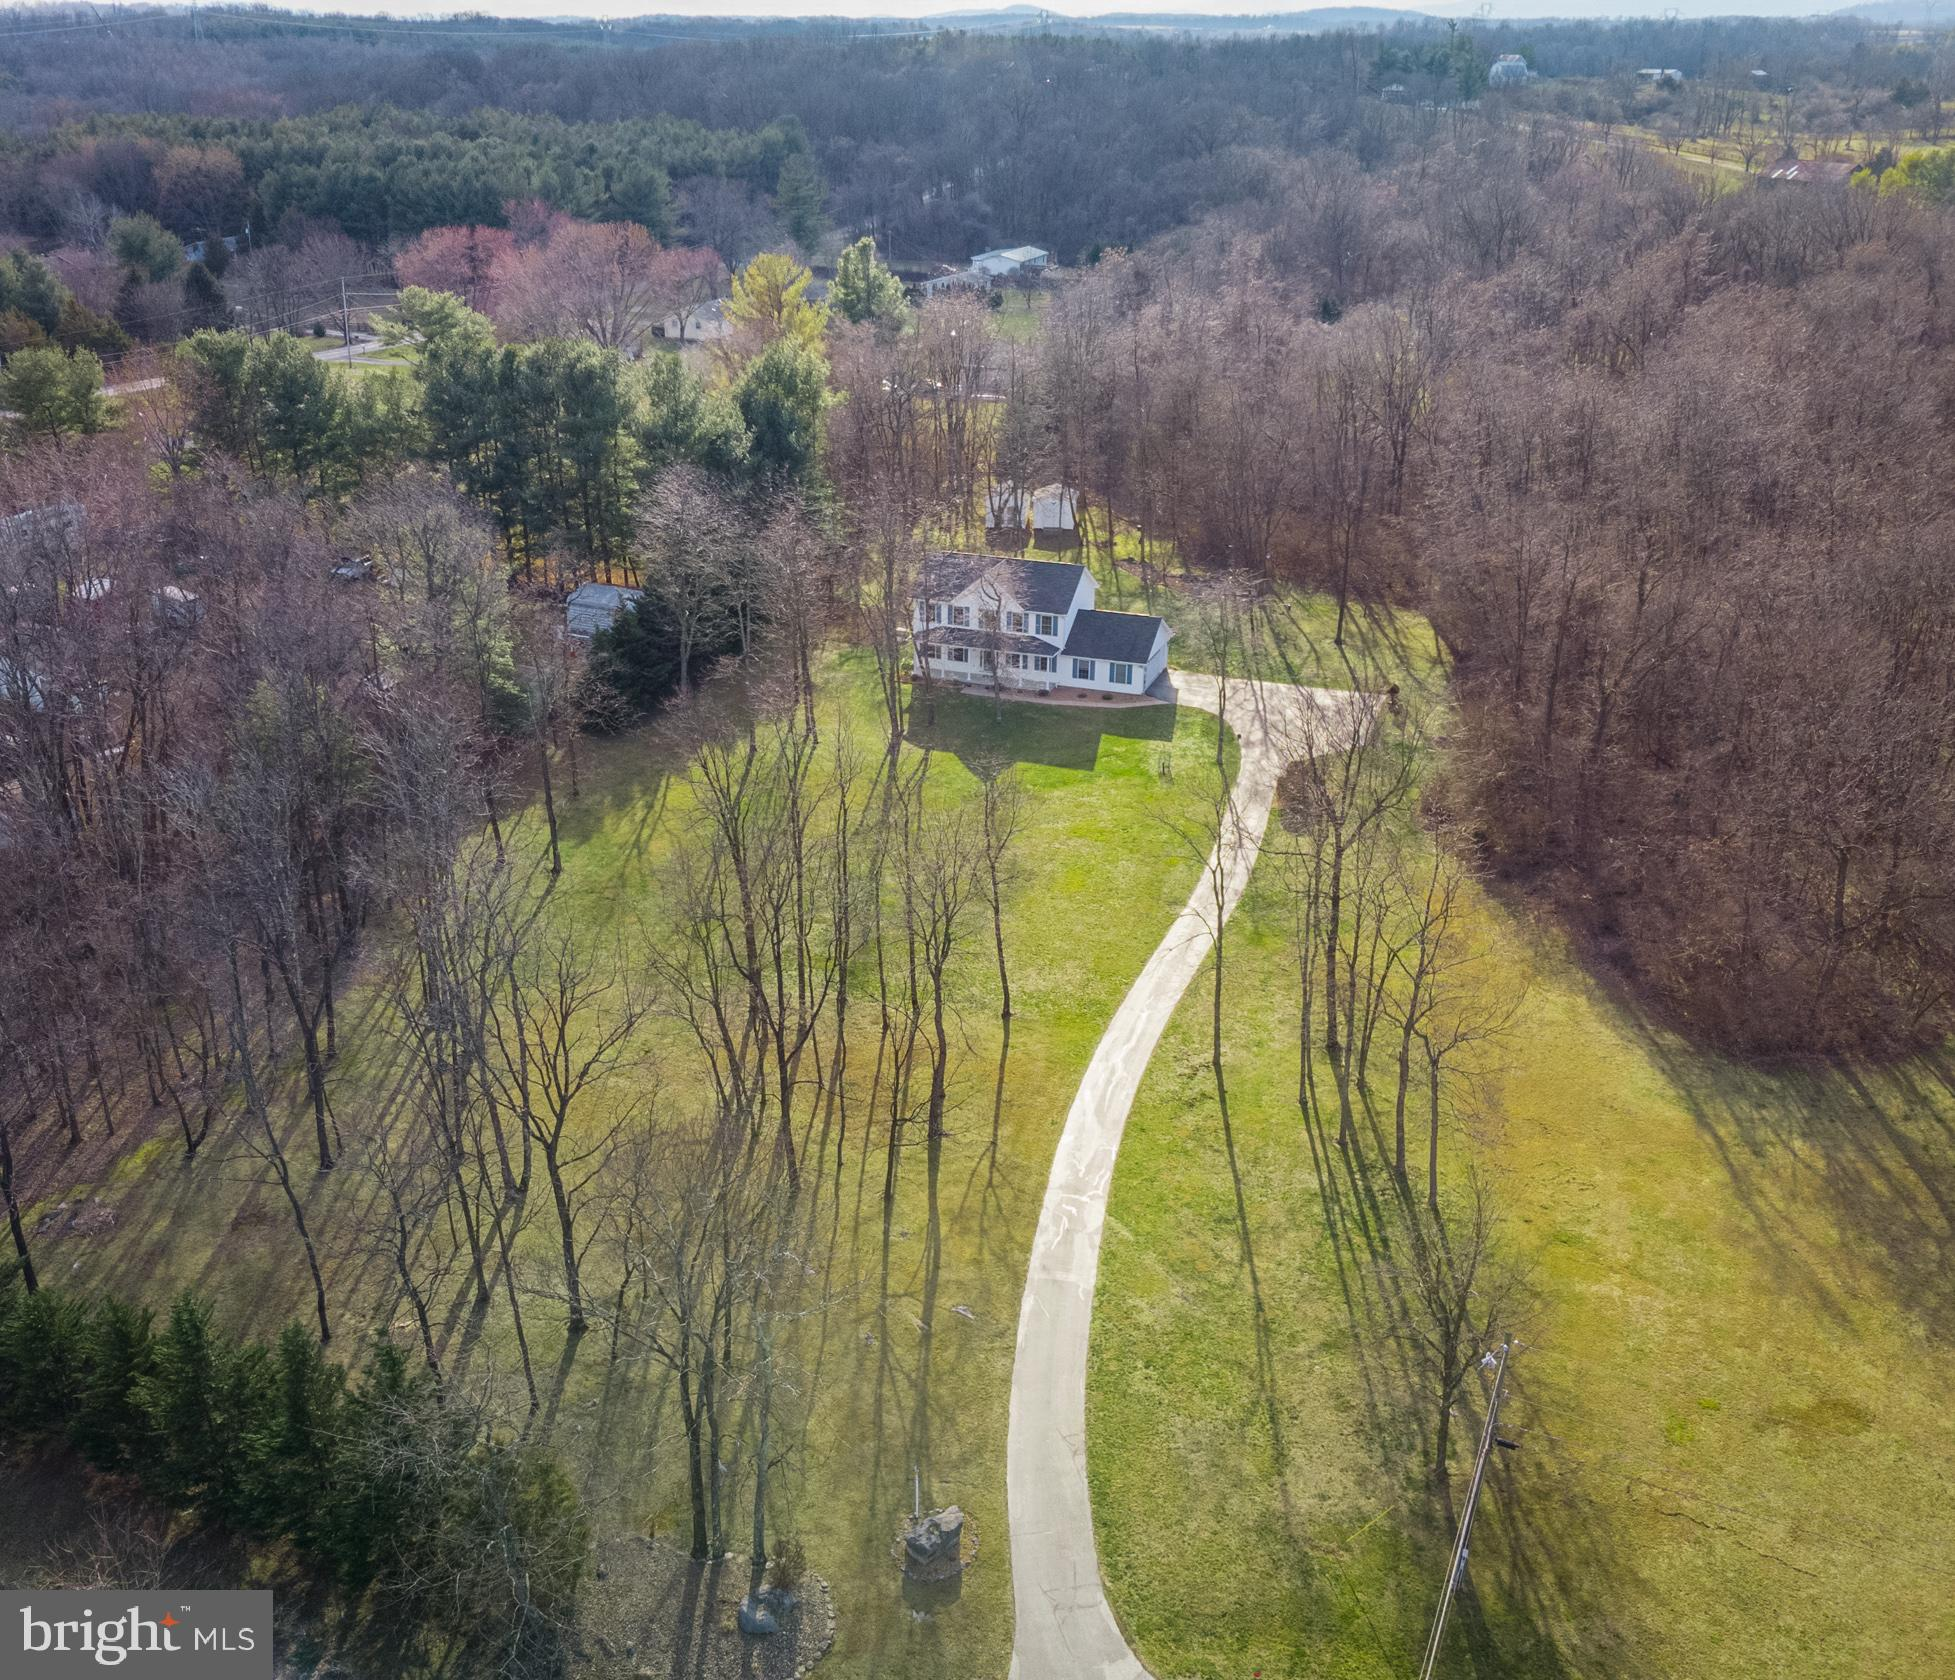 Want to live on acreage while still living in neighborhood? Here's your chance to have the best of b